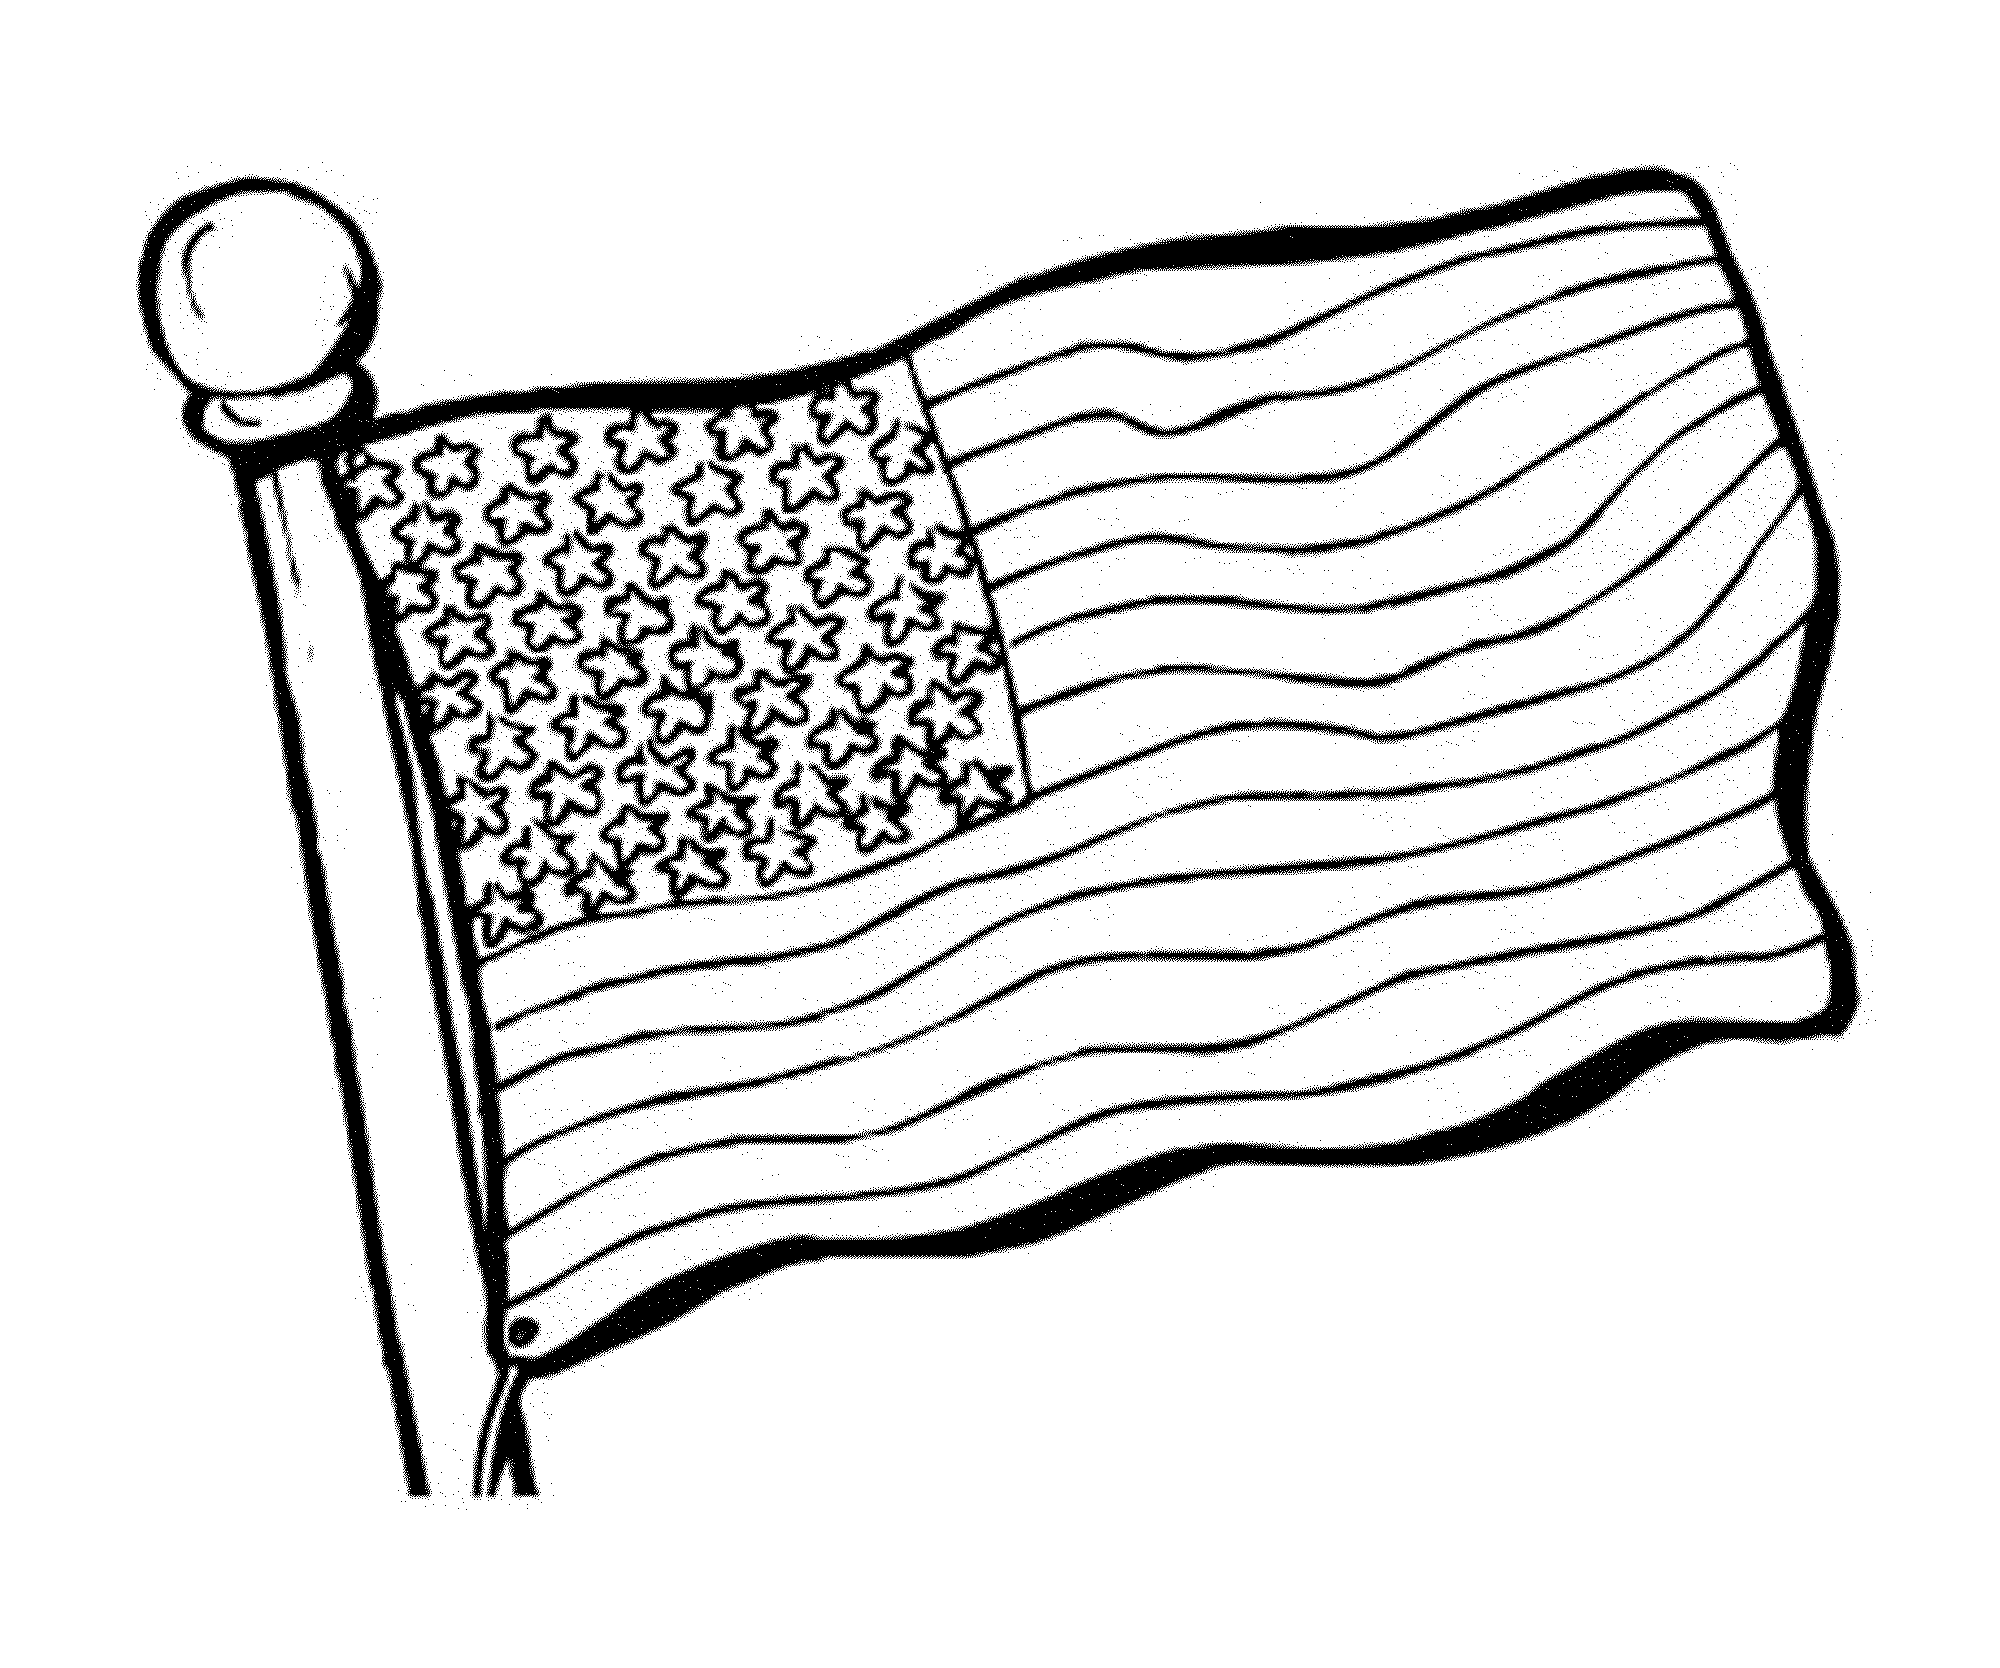 American Flag Coloring Page for the Love of the Country